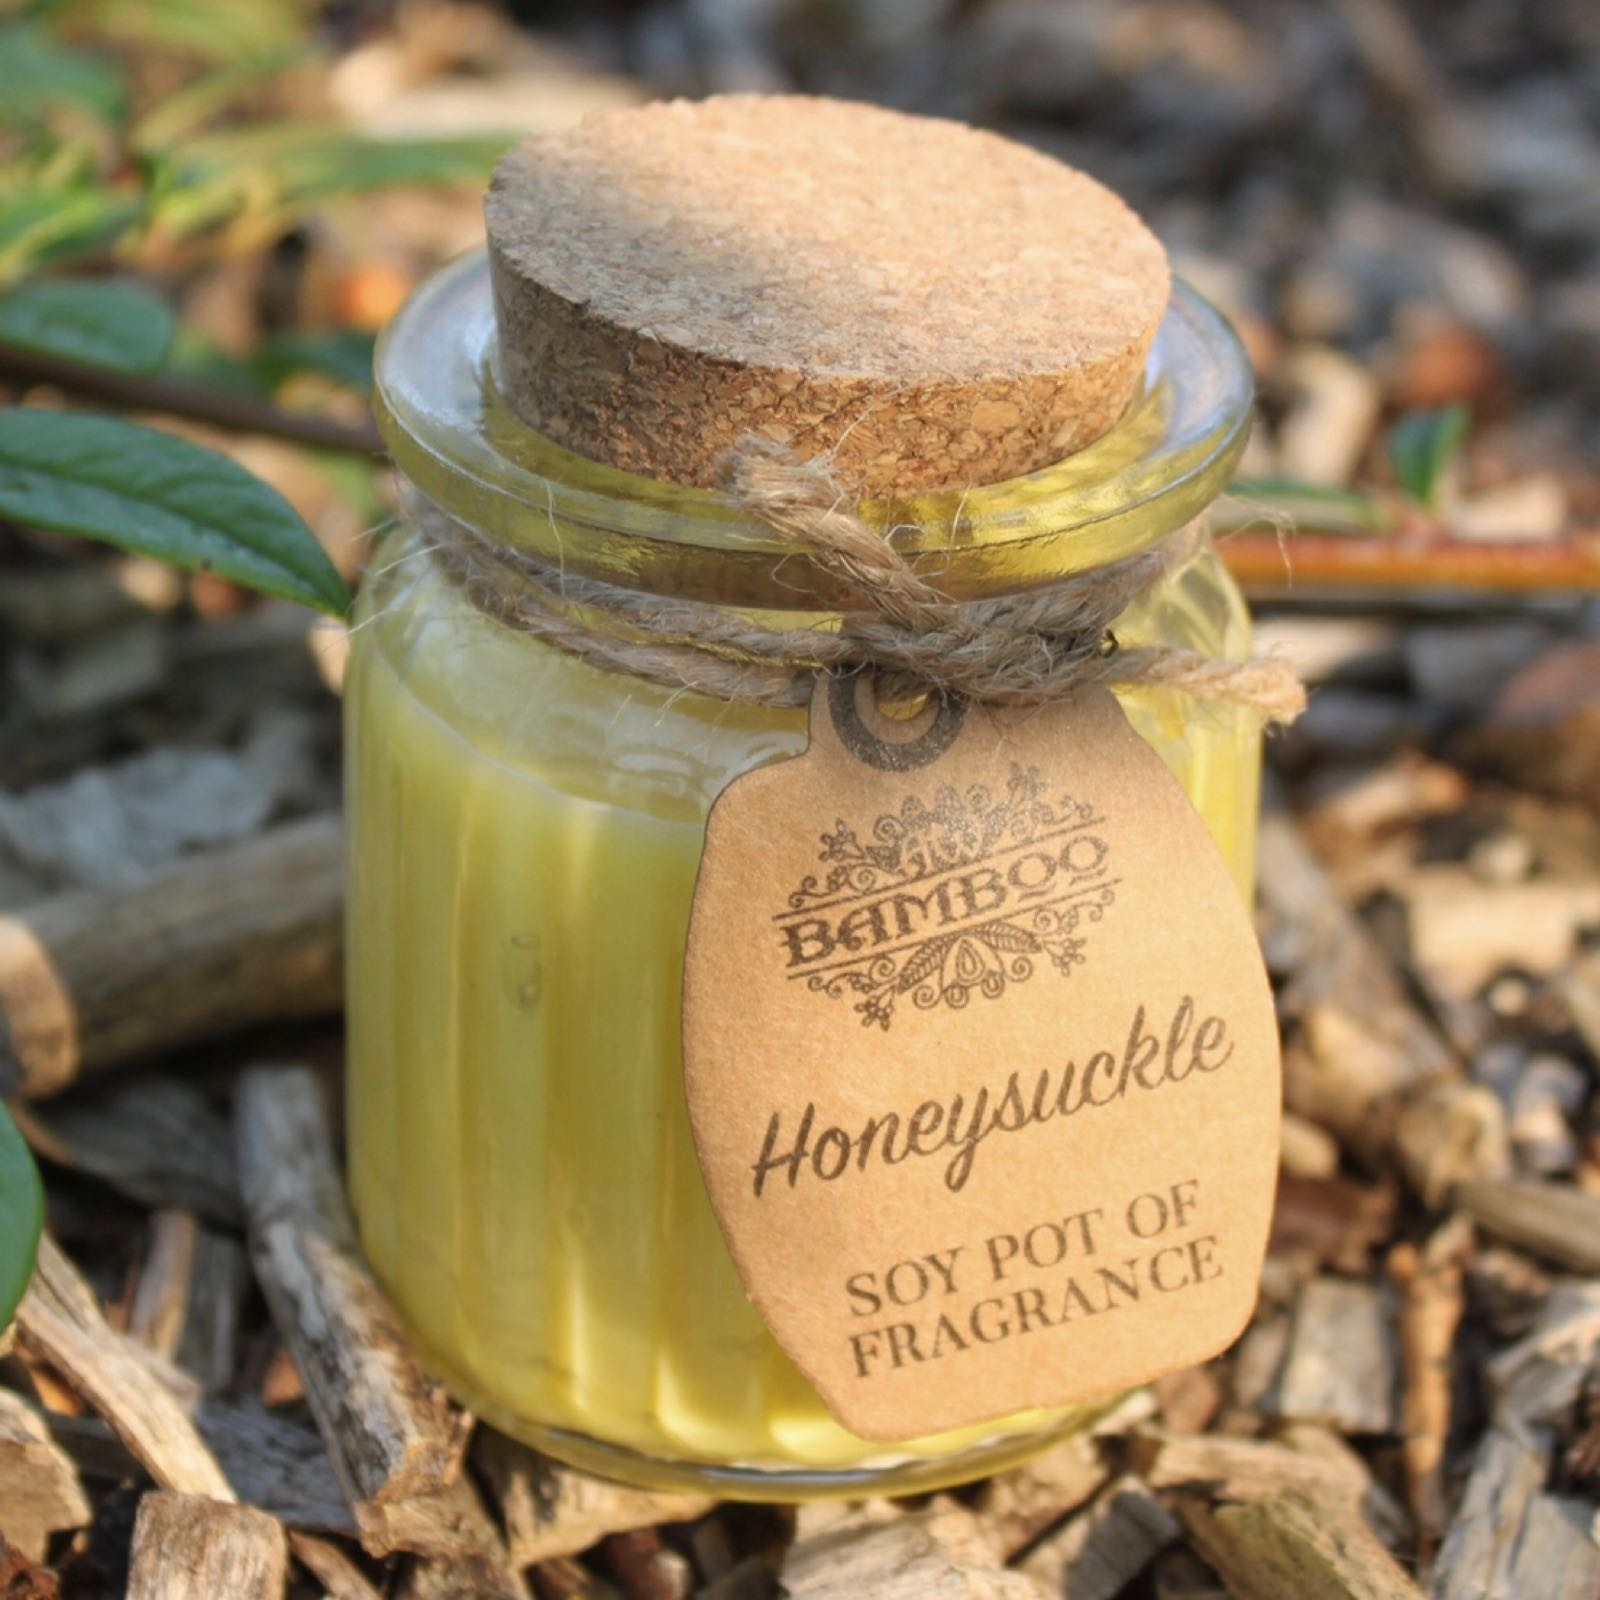 'Honeysuckle' Soy Pot Candle (Was £3.50)